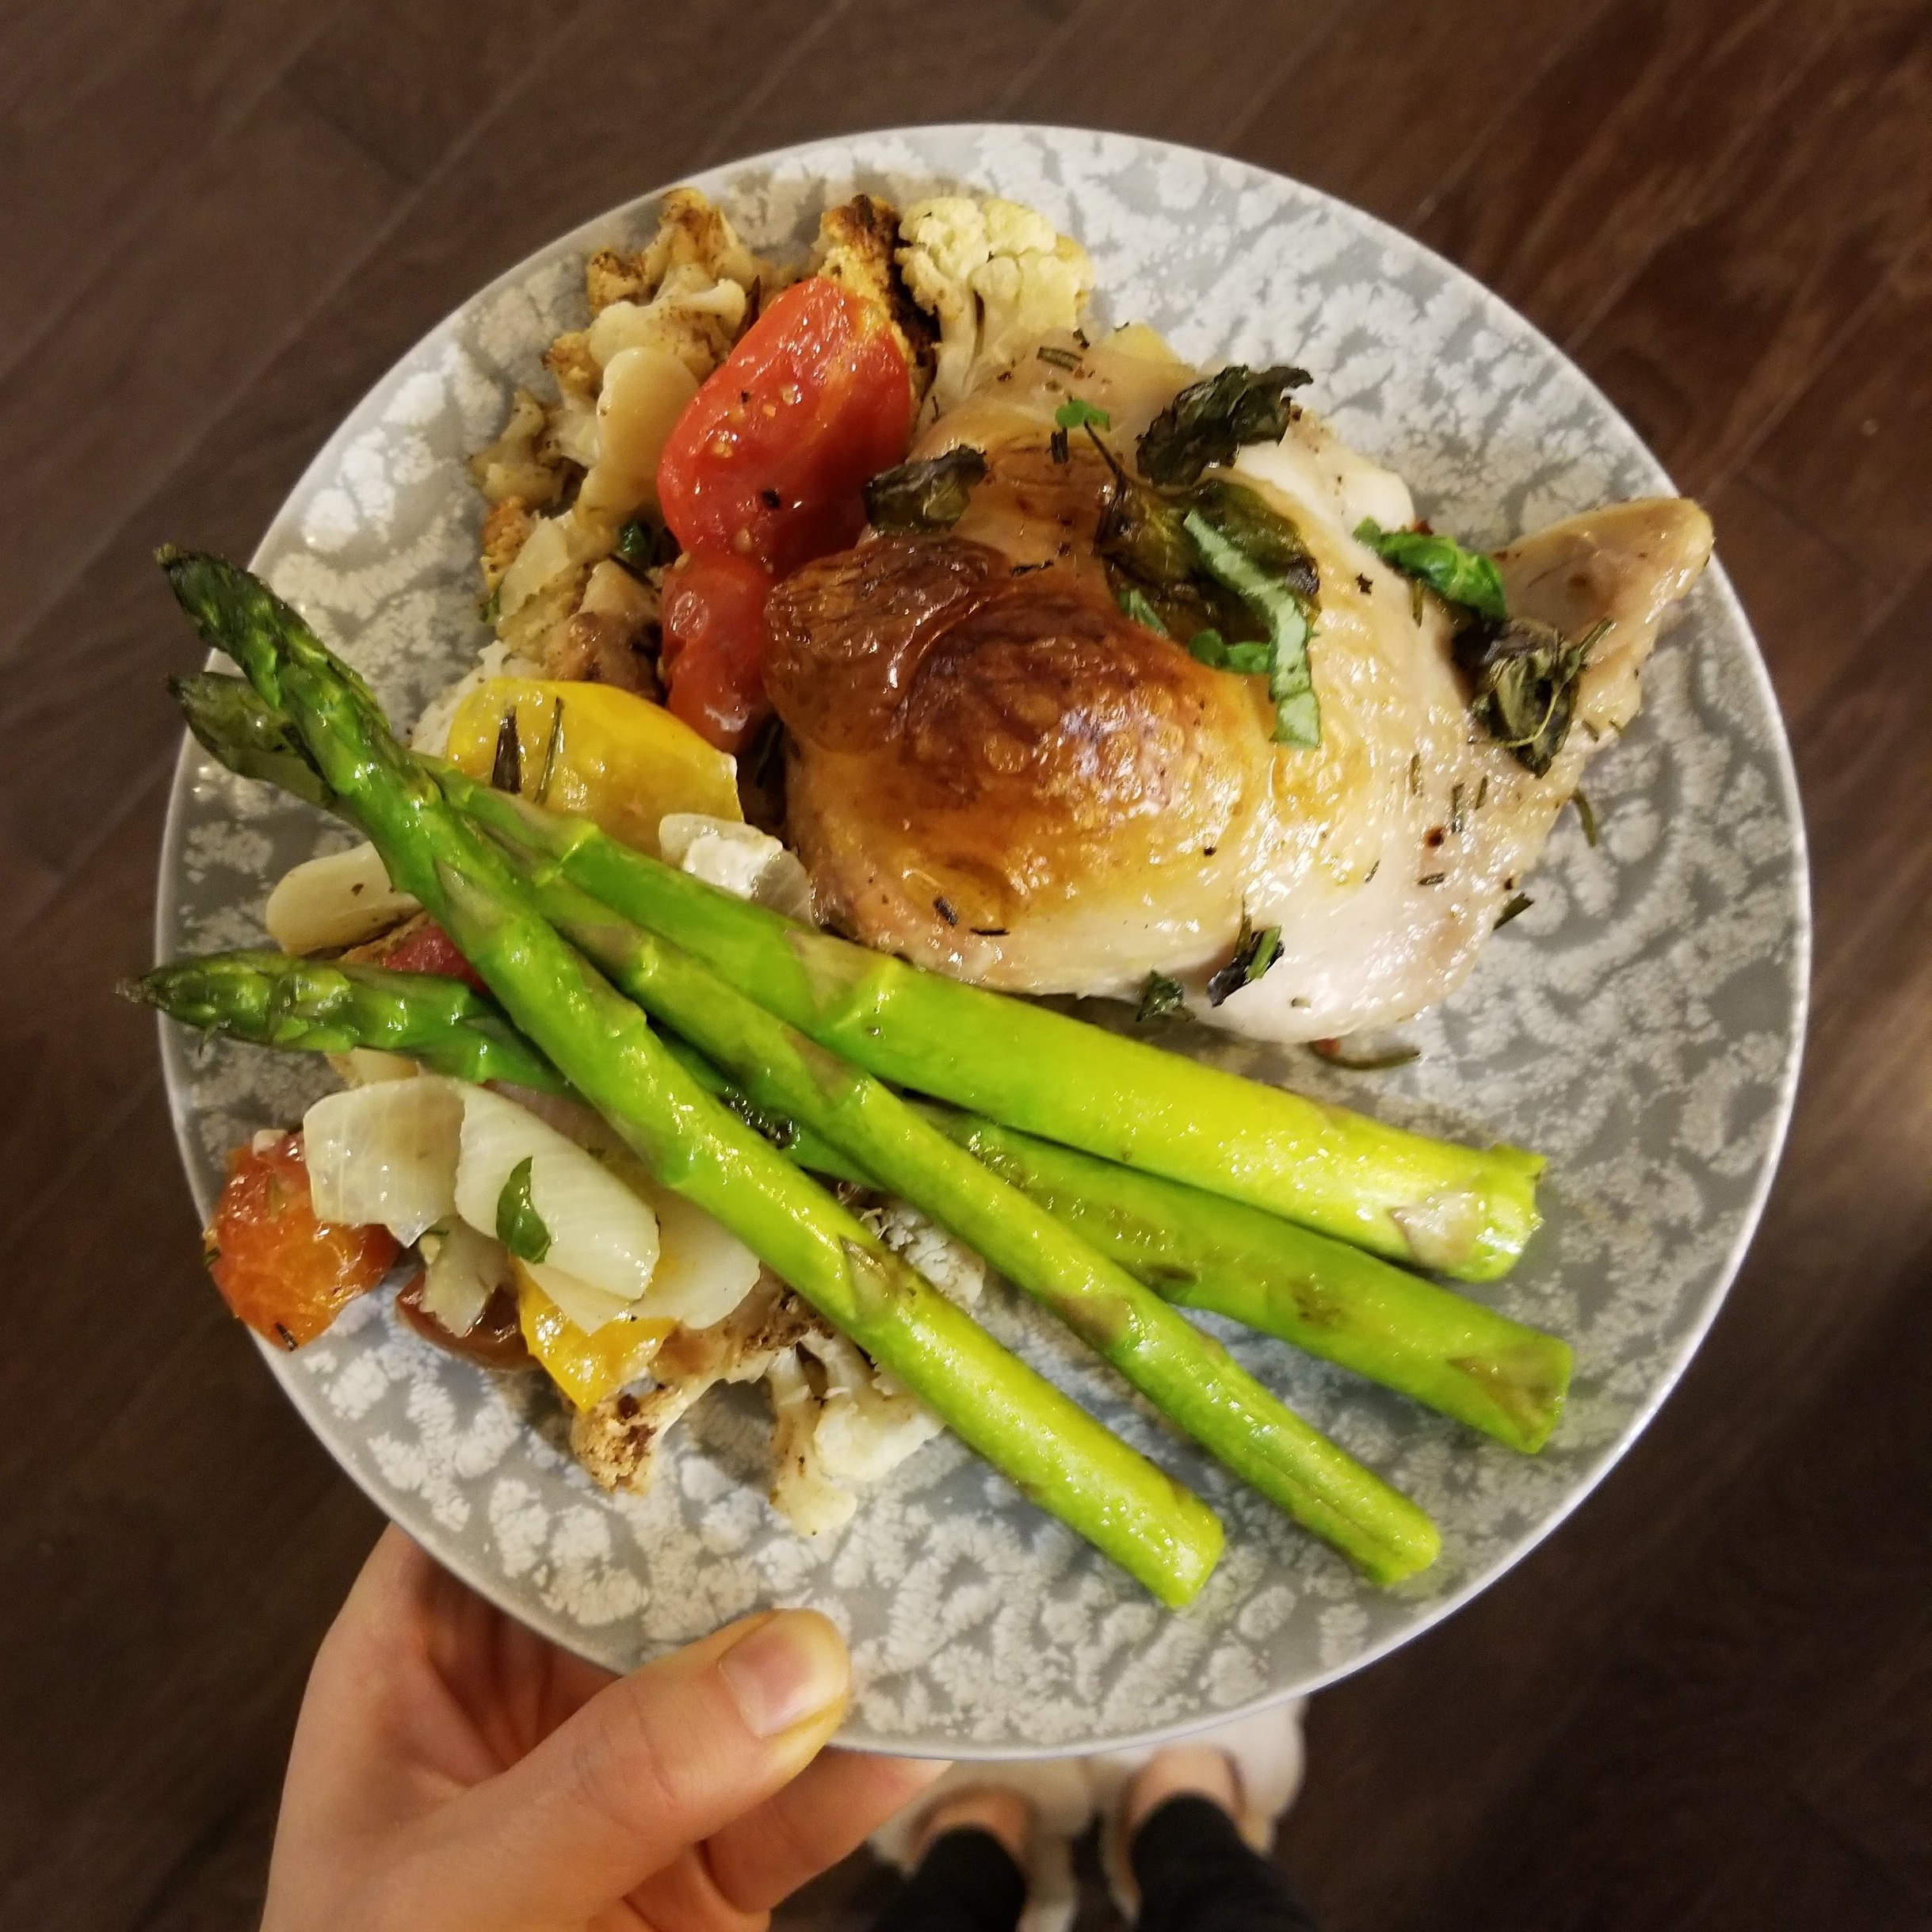 Crispy chicken baked with potatoes, tomatoes and herbs served with sauteed asparagus